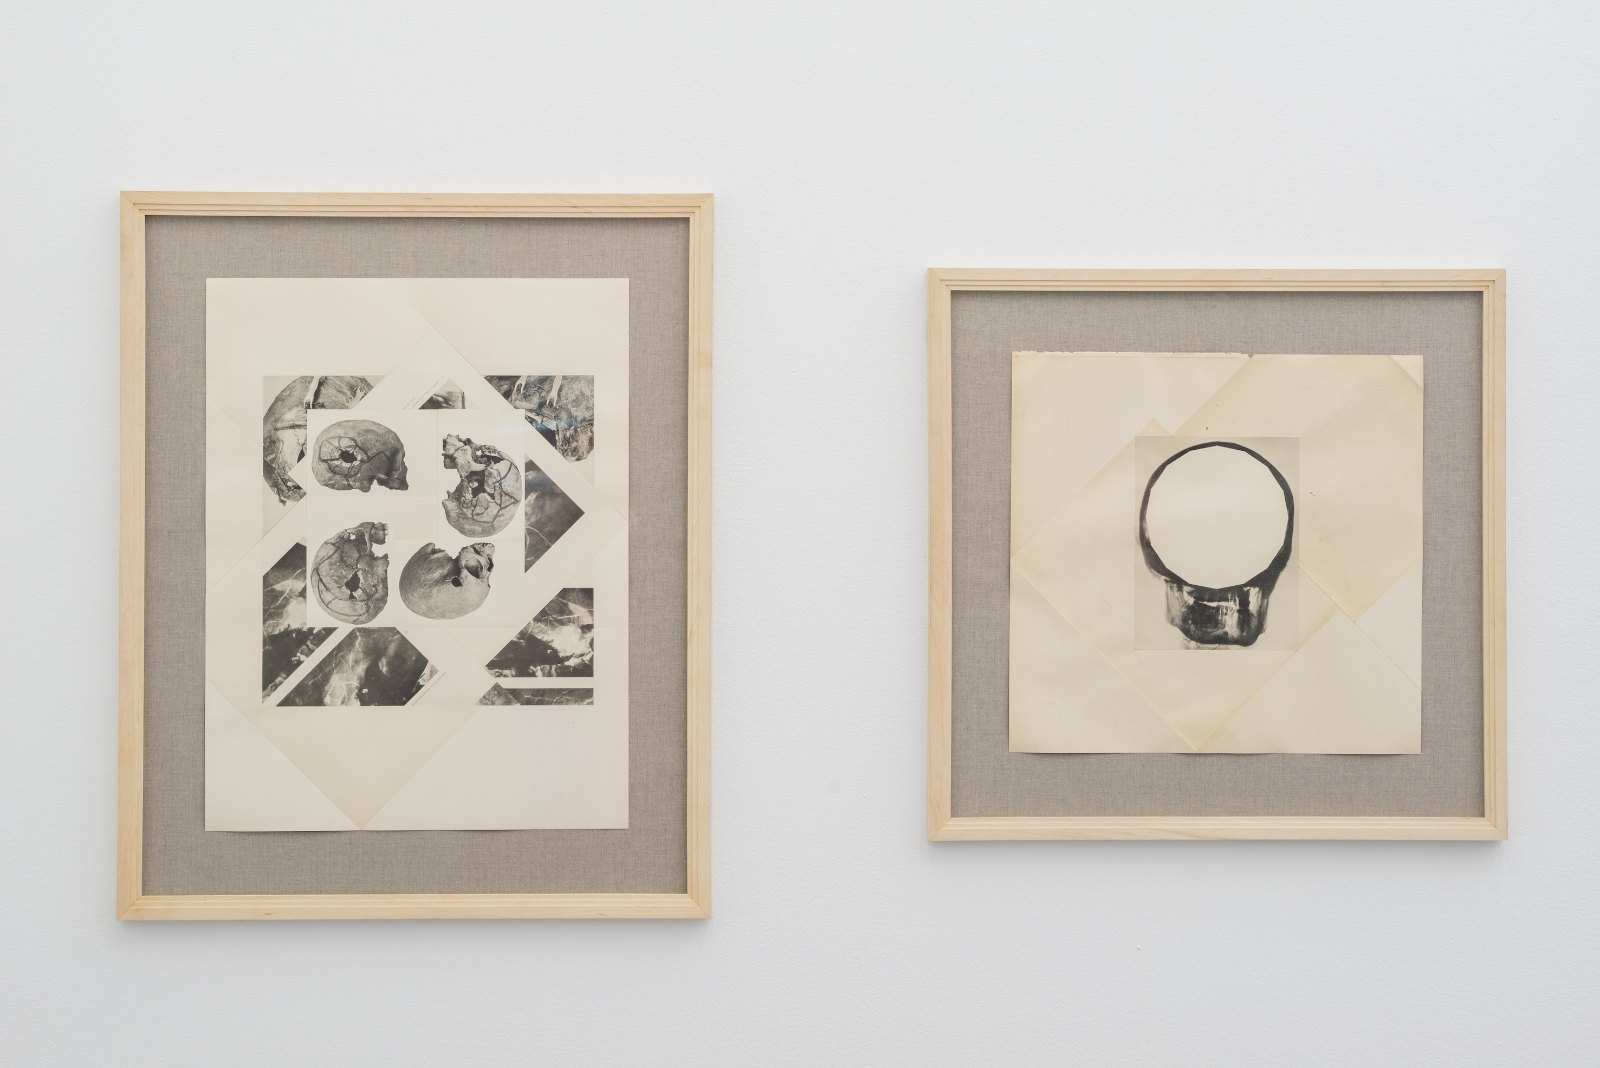 Daniel Andersson, Untitled, 2010-2011, collage on linen, 84 x 68,5 cm. Untitled, 2010-2011, collage on linen, 67 x 68 cm